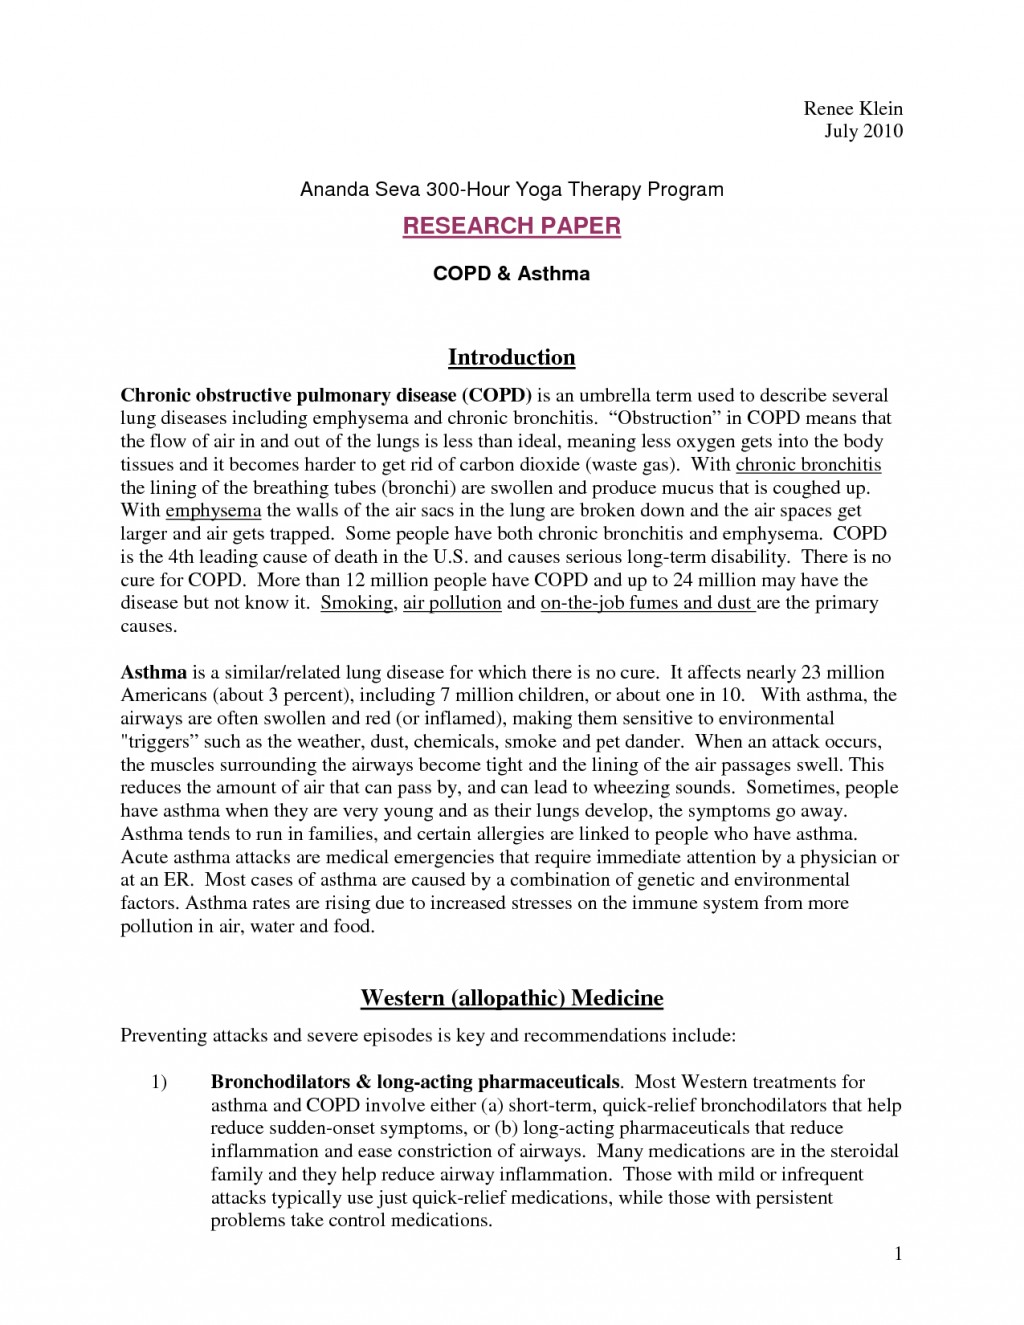 006 Best Photos Of Writing Portfolio Introduction Sample Good Essay Introductions L University Examples Research Paper College Persuasive Narrative Argumentative Intros For Unusual Essays Papers Pdf Expository Large